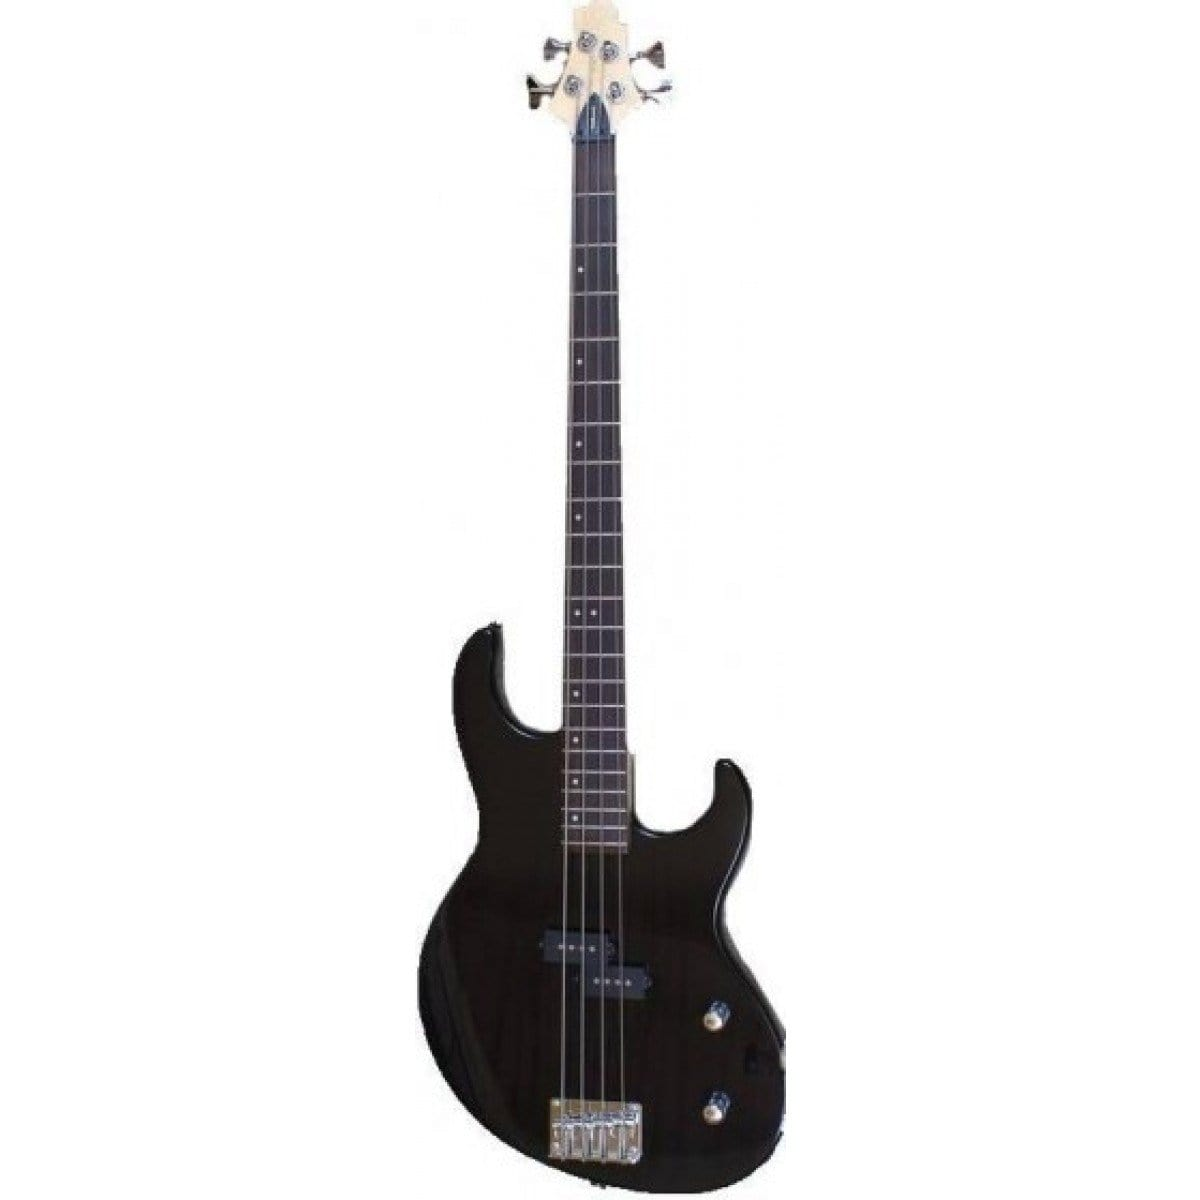 Samick FN-2 Greg Bennett 4-String Electric Bass Guitar - Black